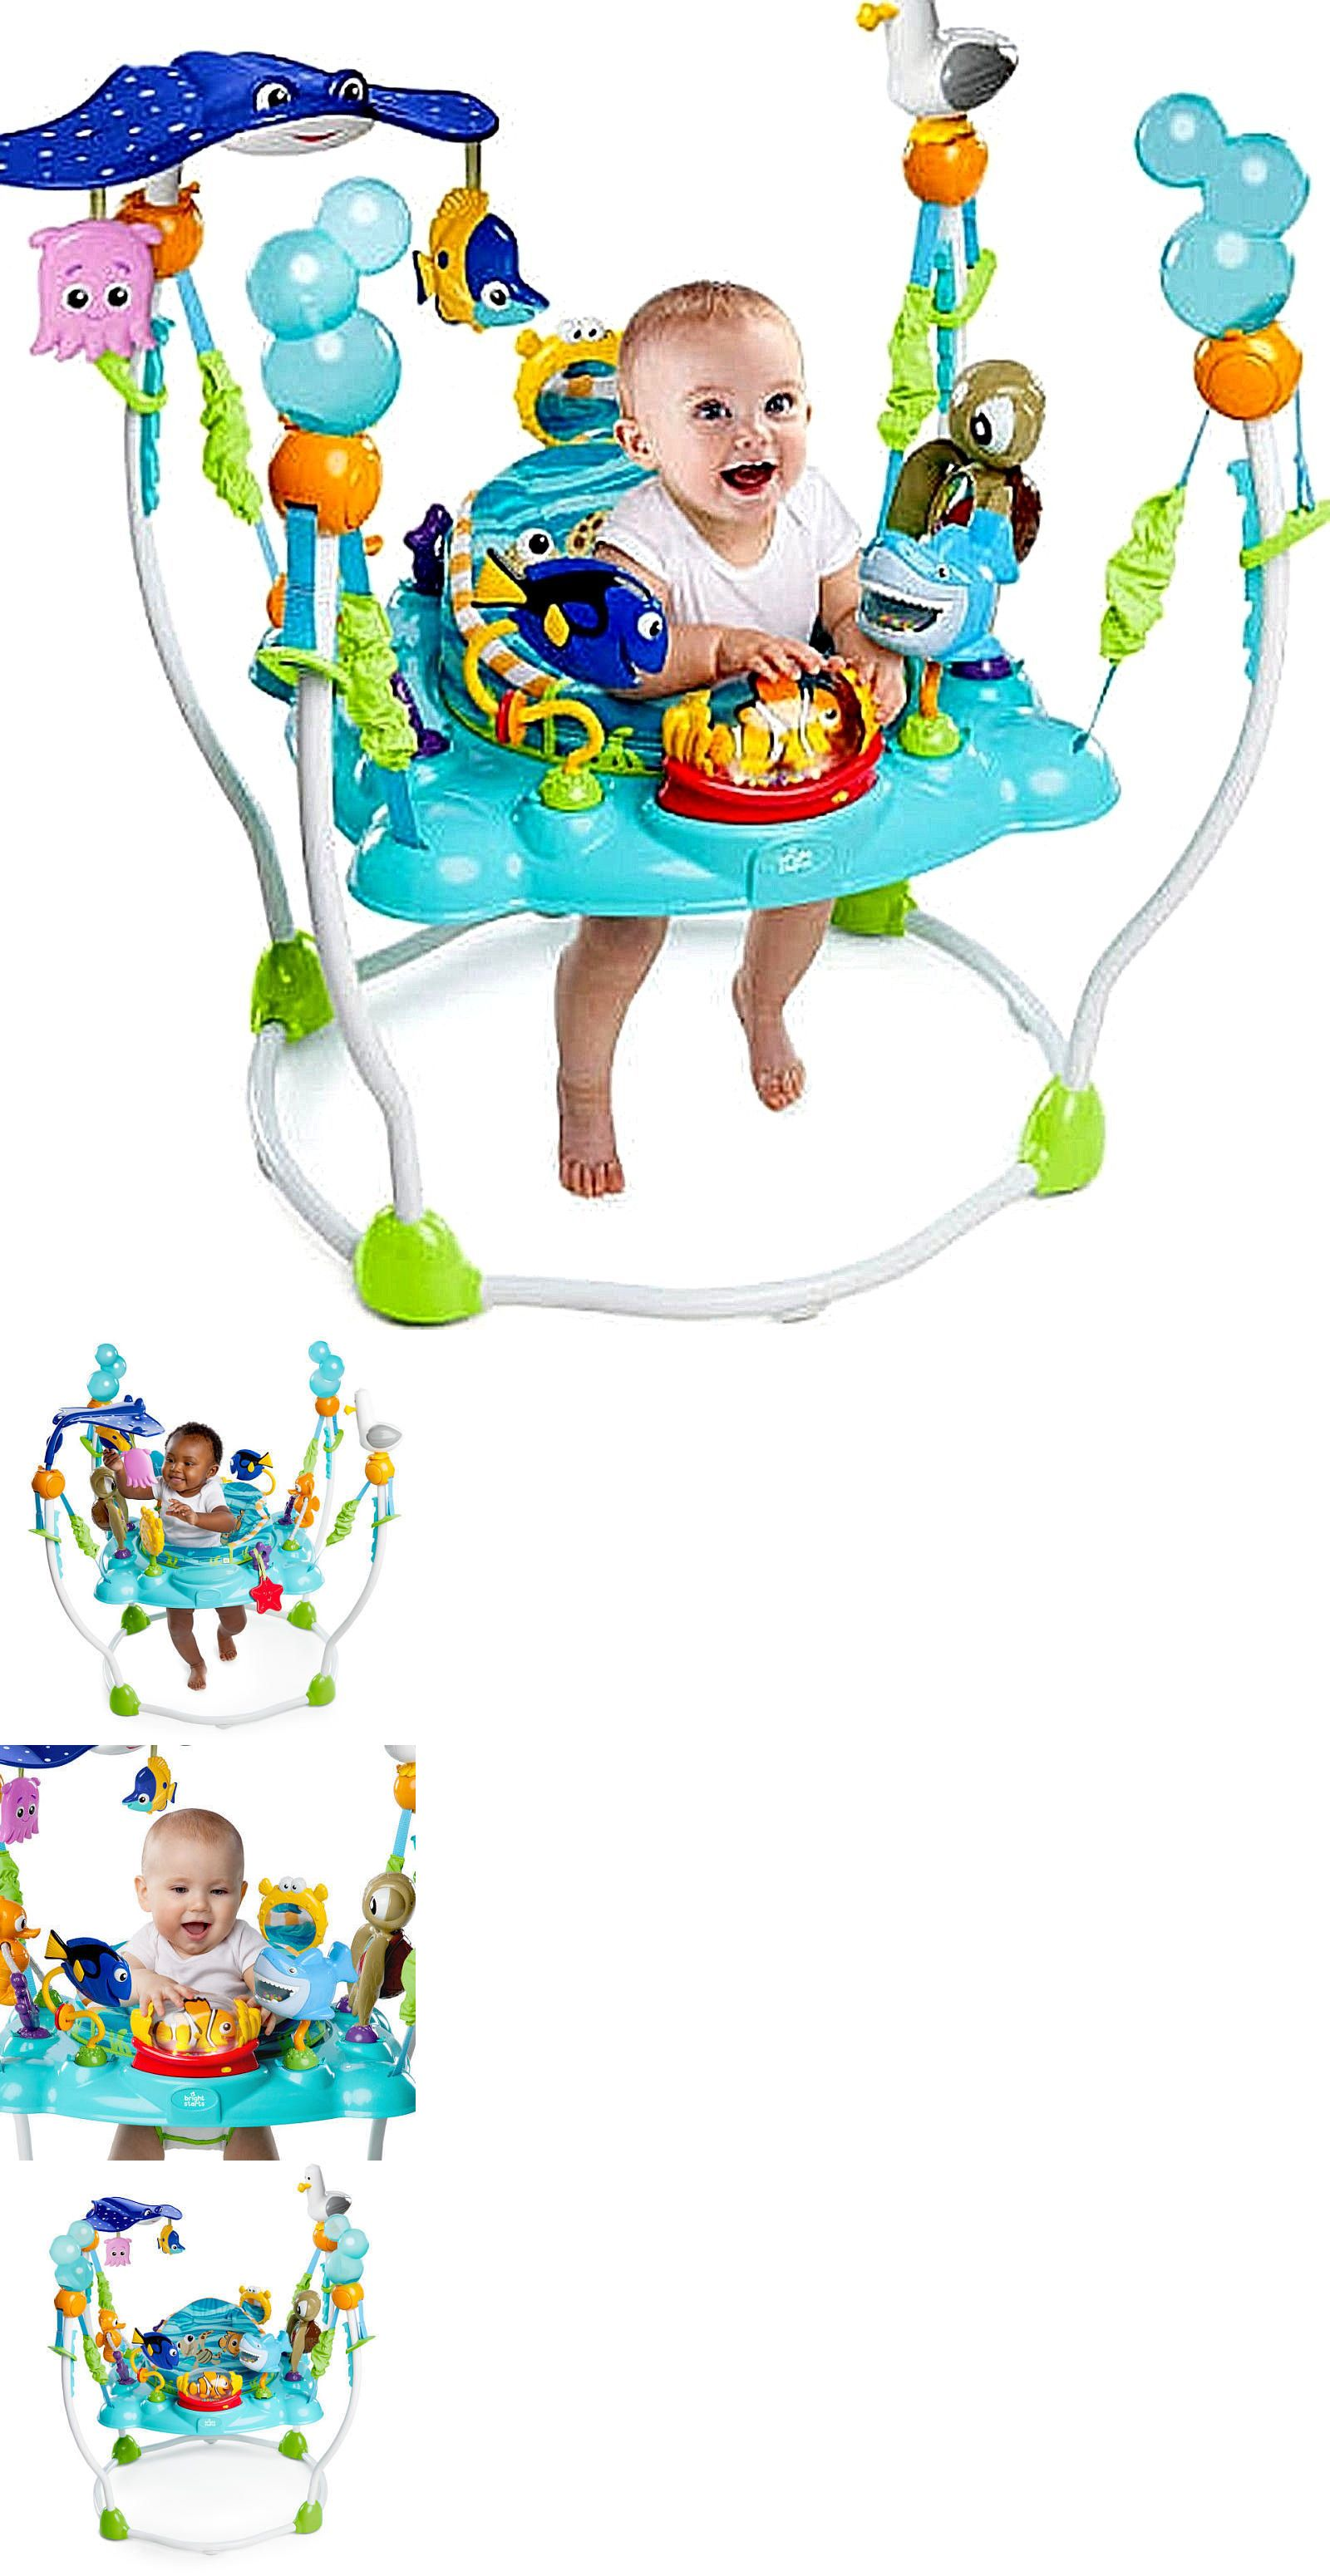 fe6003bba Baby Jumper Disney Finding Nemo Dory Sea activities seat Bouncer ...